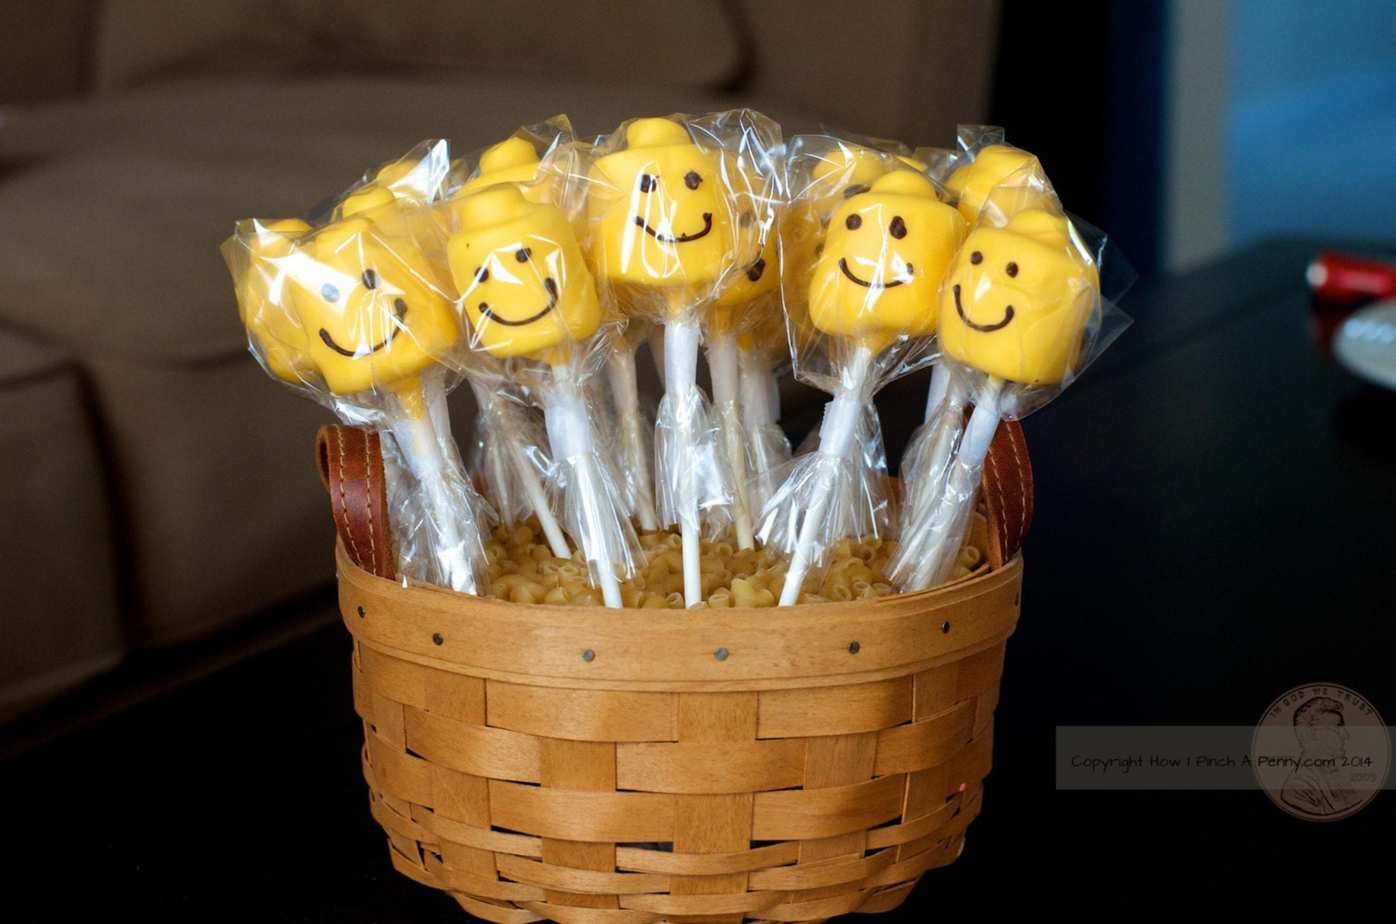 Lego Head Marshmallow Pops ready to be given out. in a longaberger basket